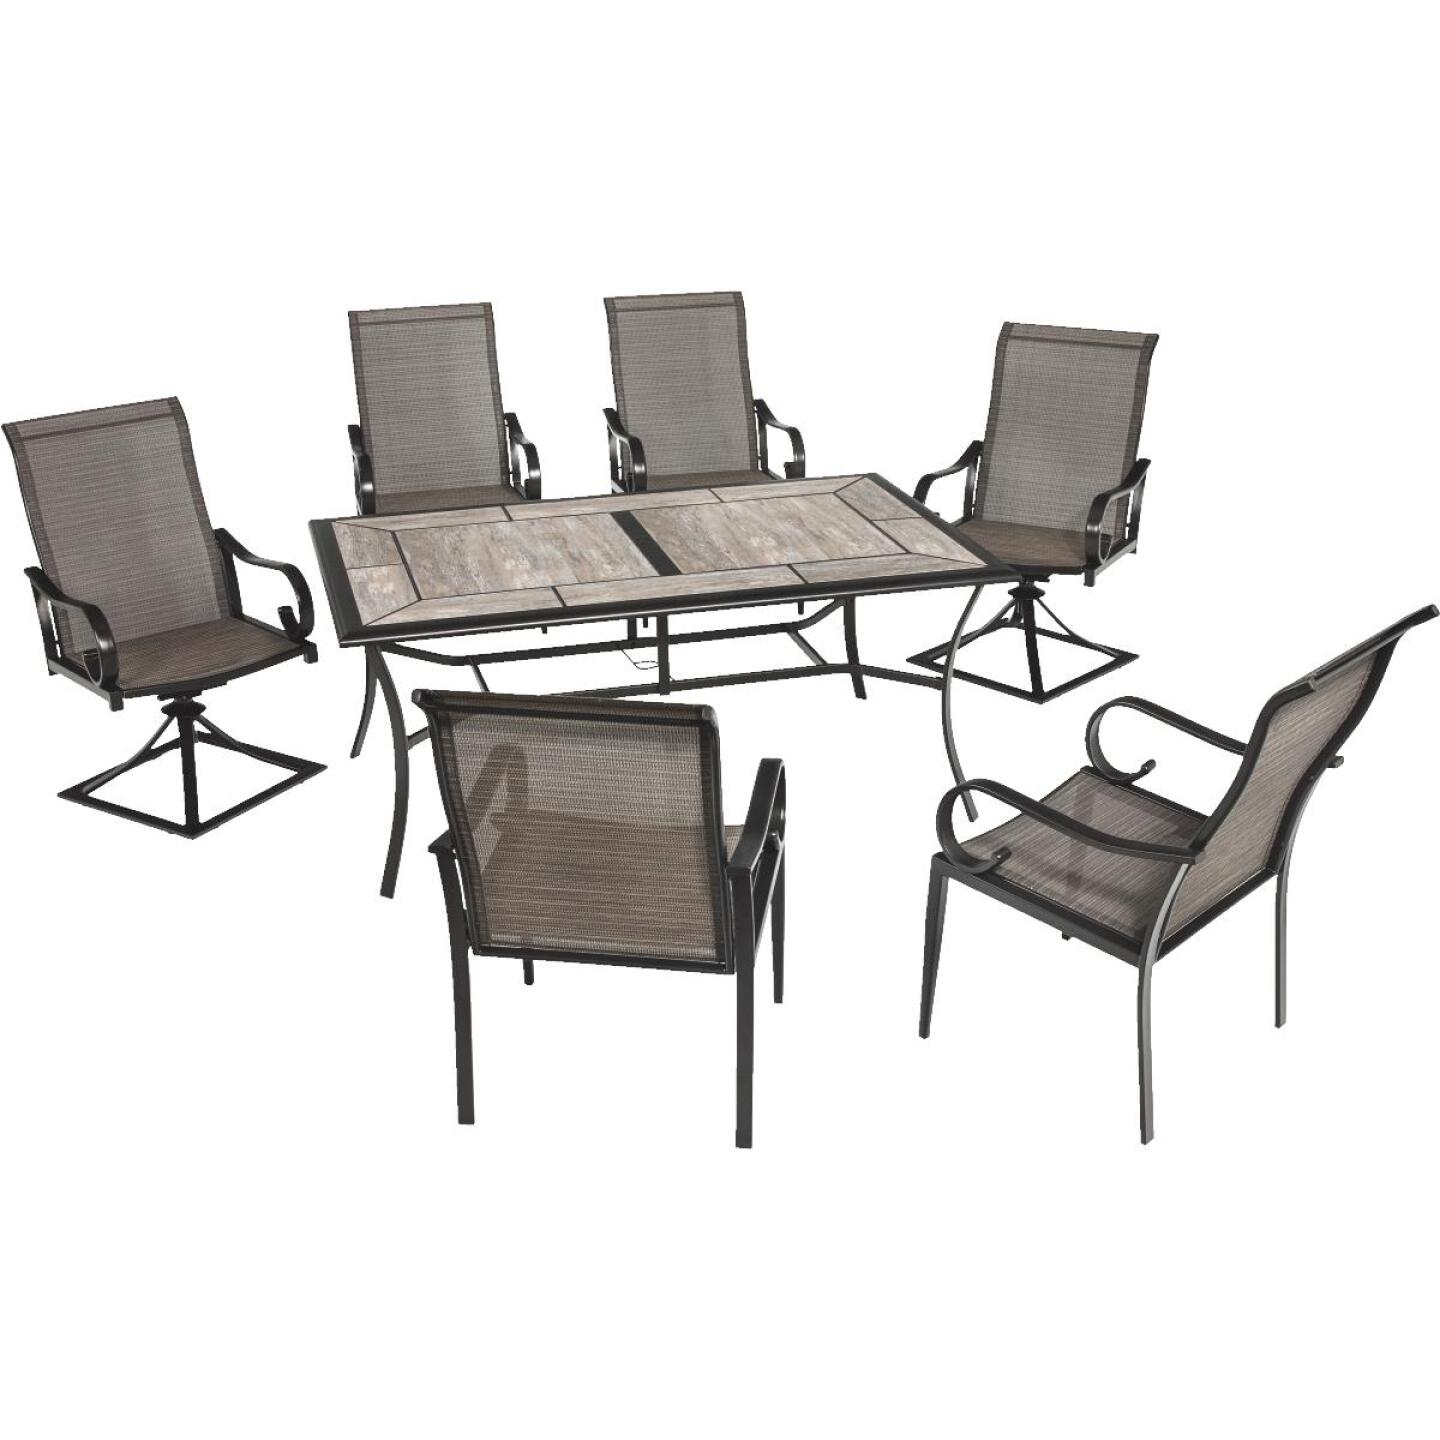 Outdoor Expressions Berkshire 7-Piece Dining Set Image 200